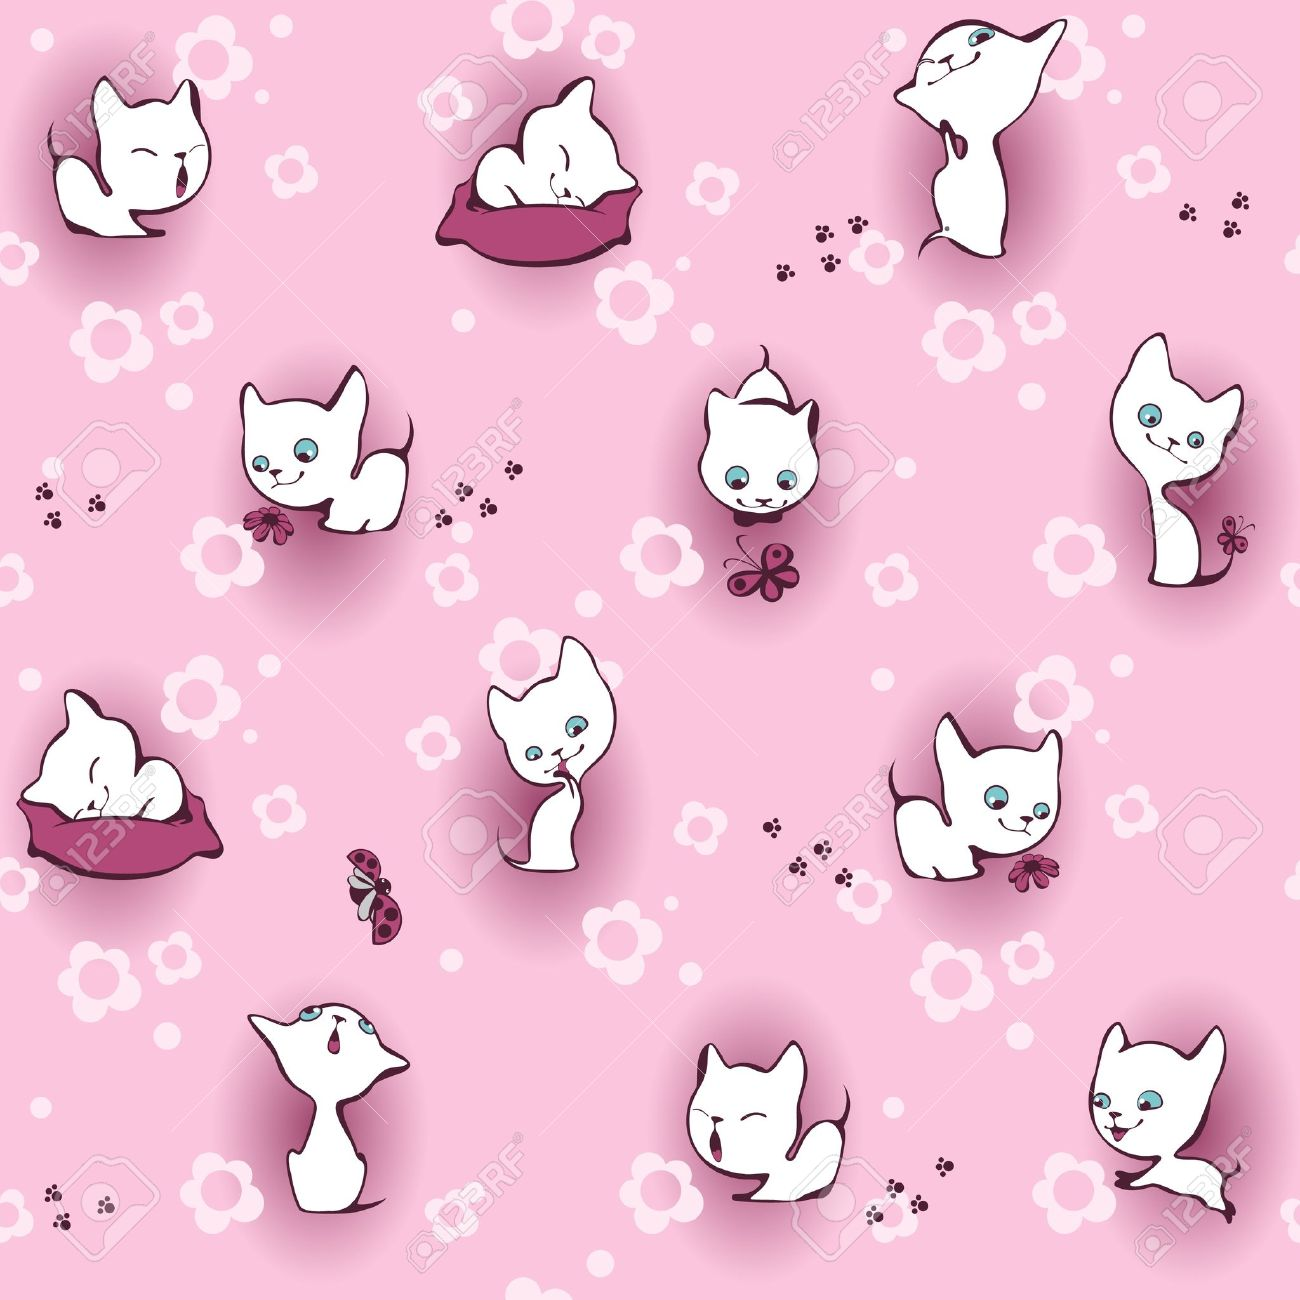 White Kitten In Flowers Wallpaper Pink Royalty Free Cliparts